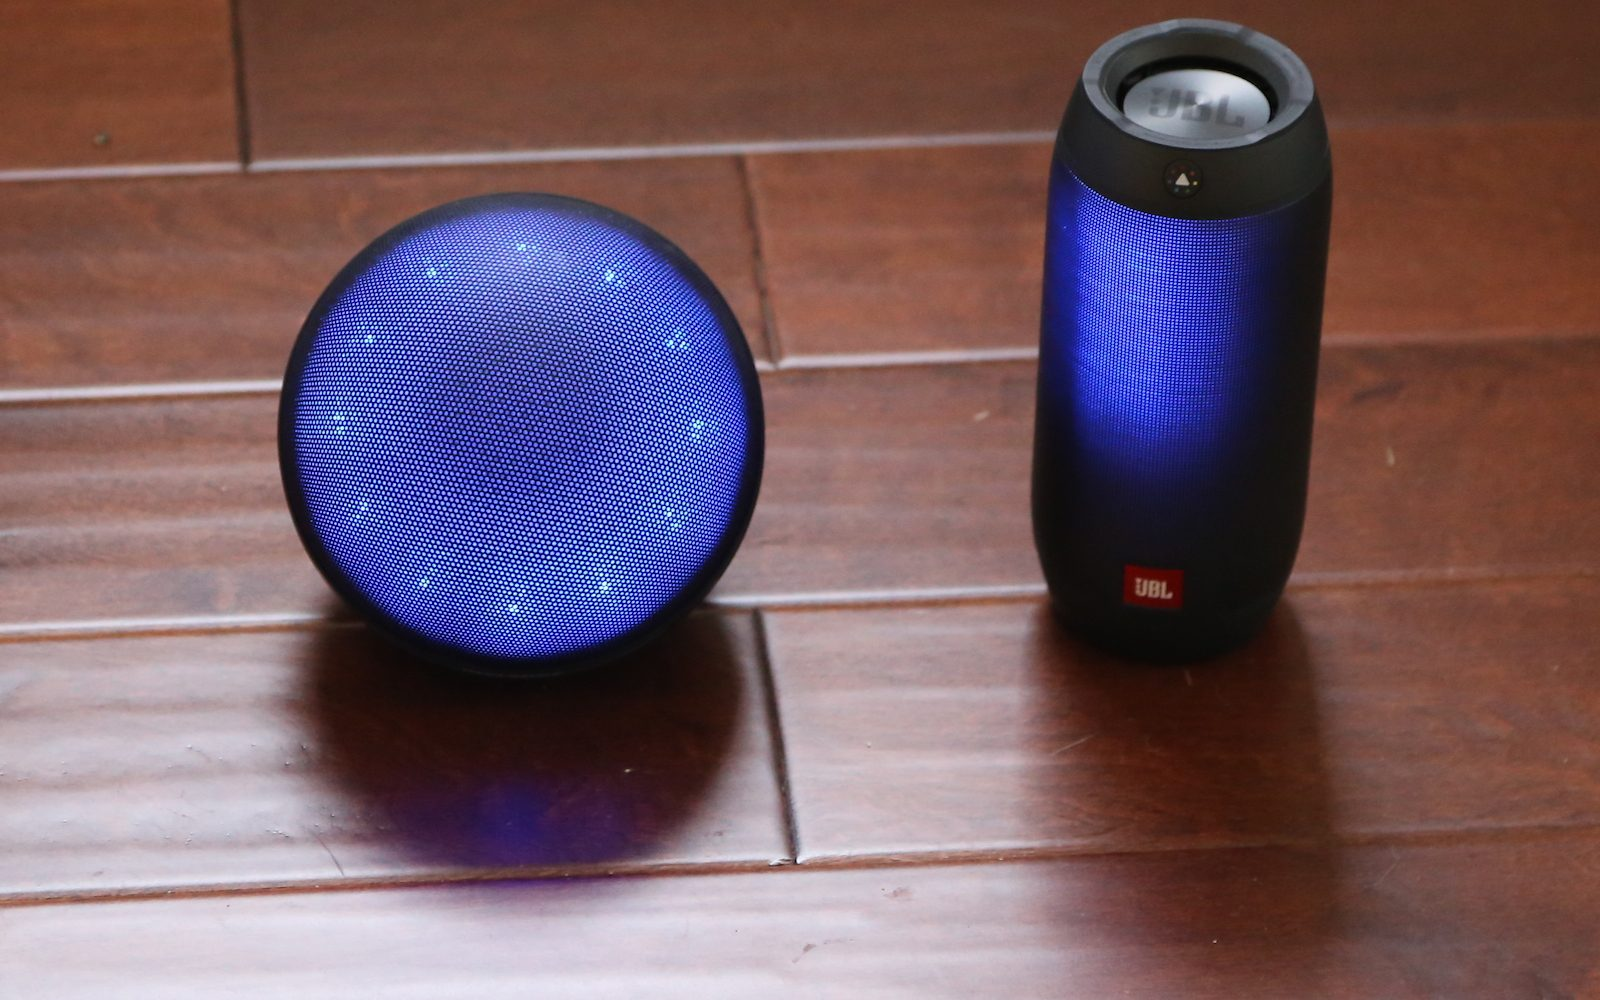 JBL Pulse 2 vs Marsboy Orb: Bluetooth speakers at ends of the LED